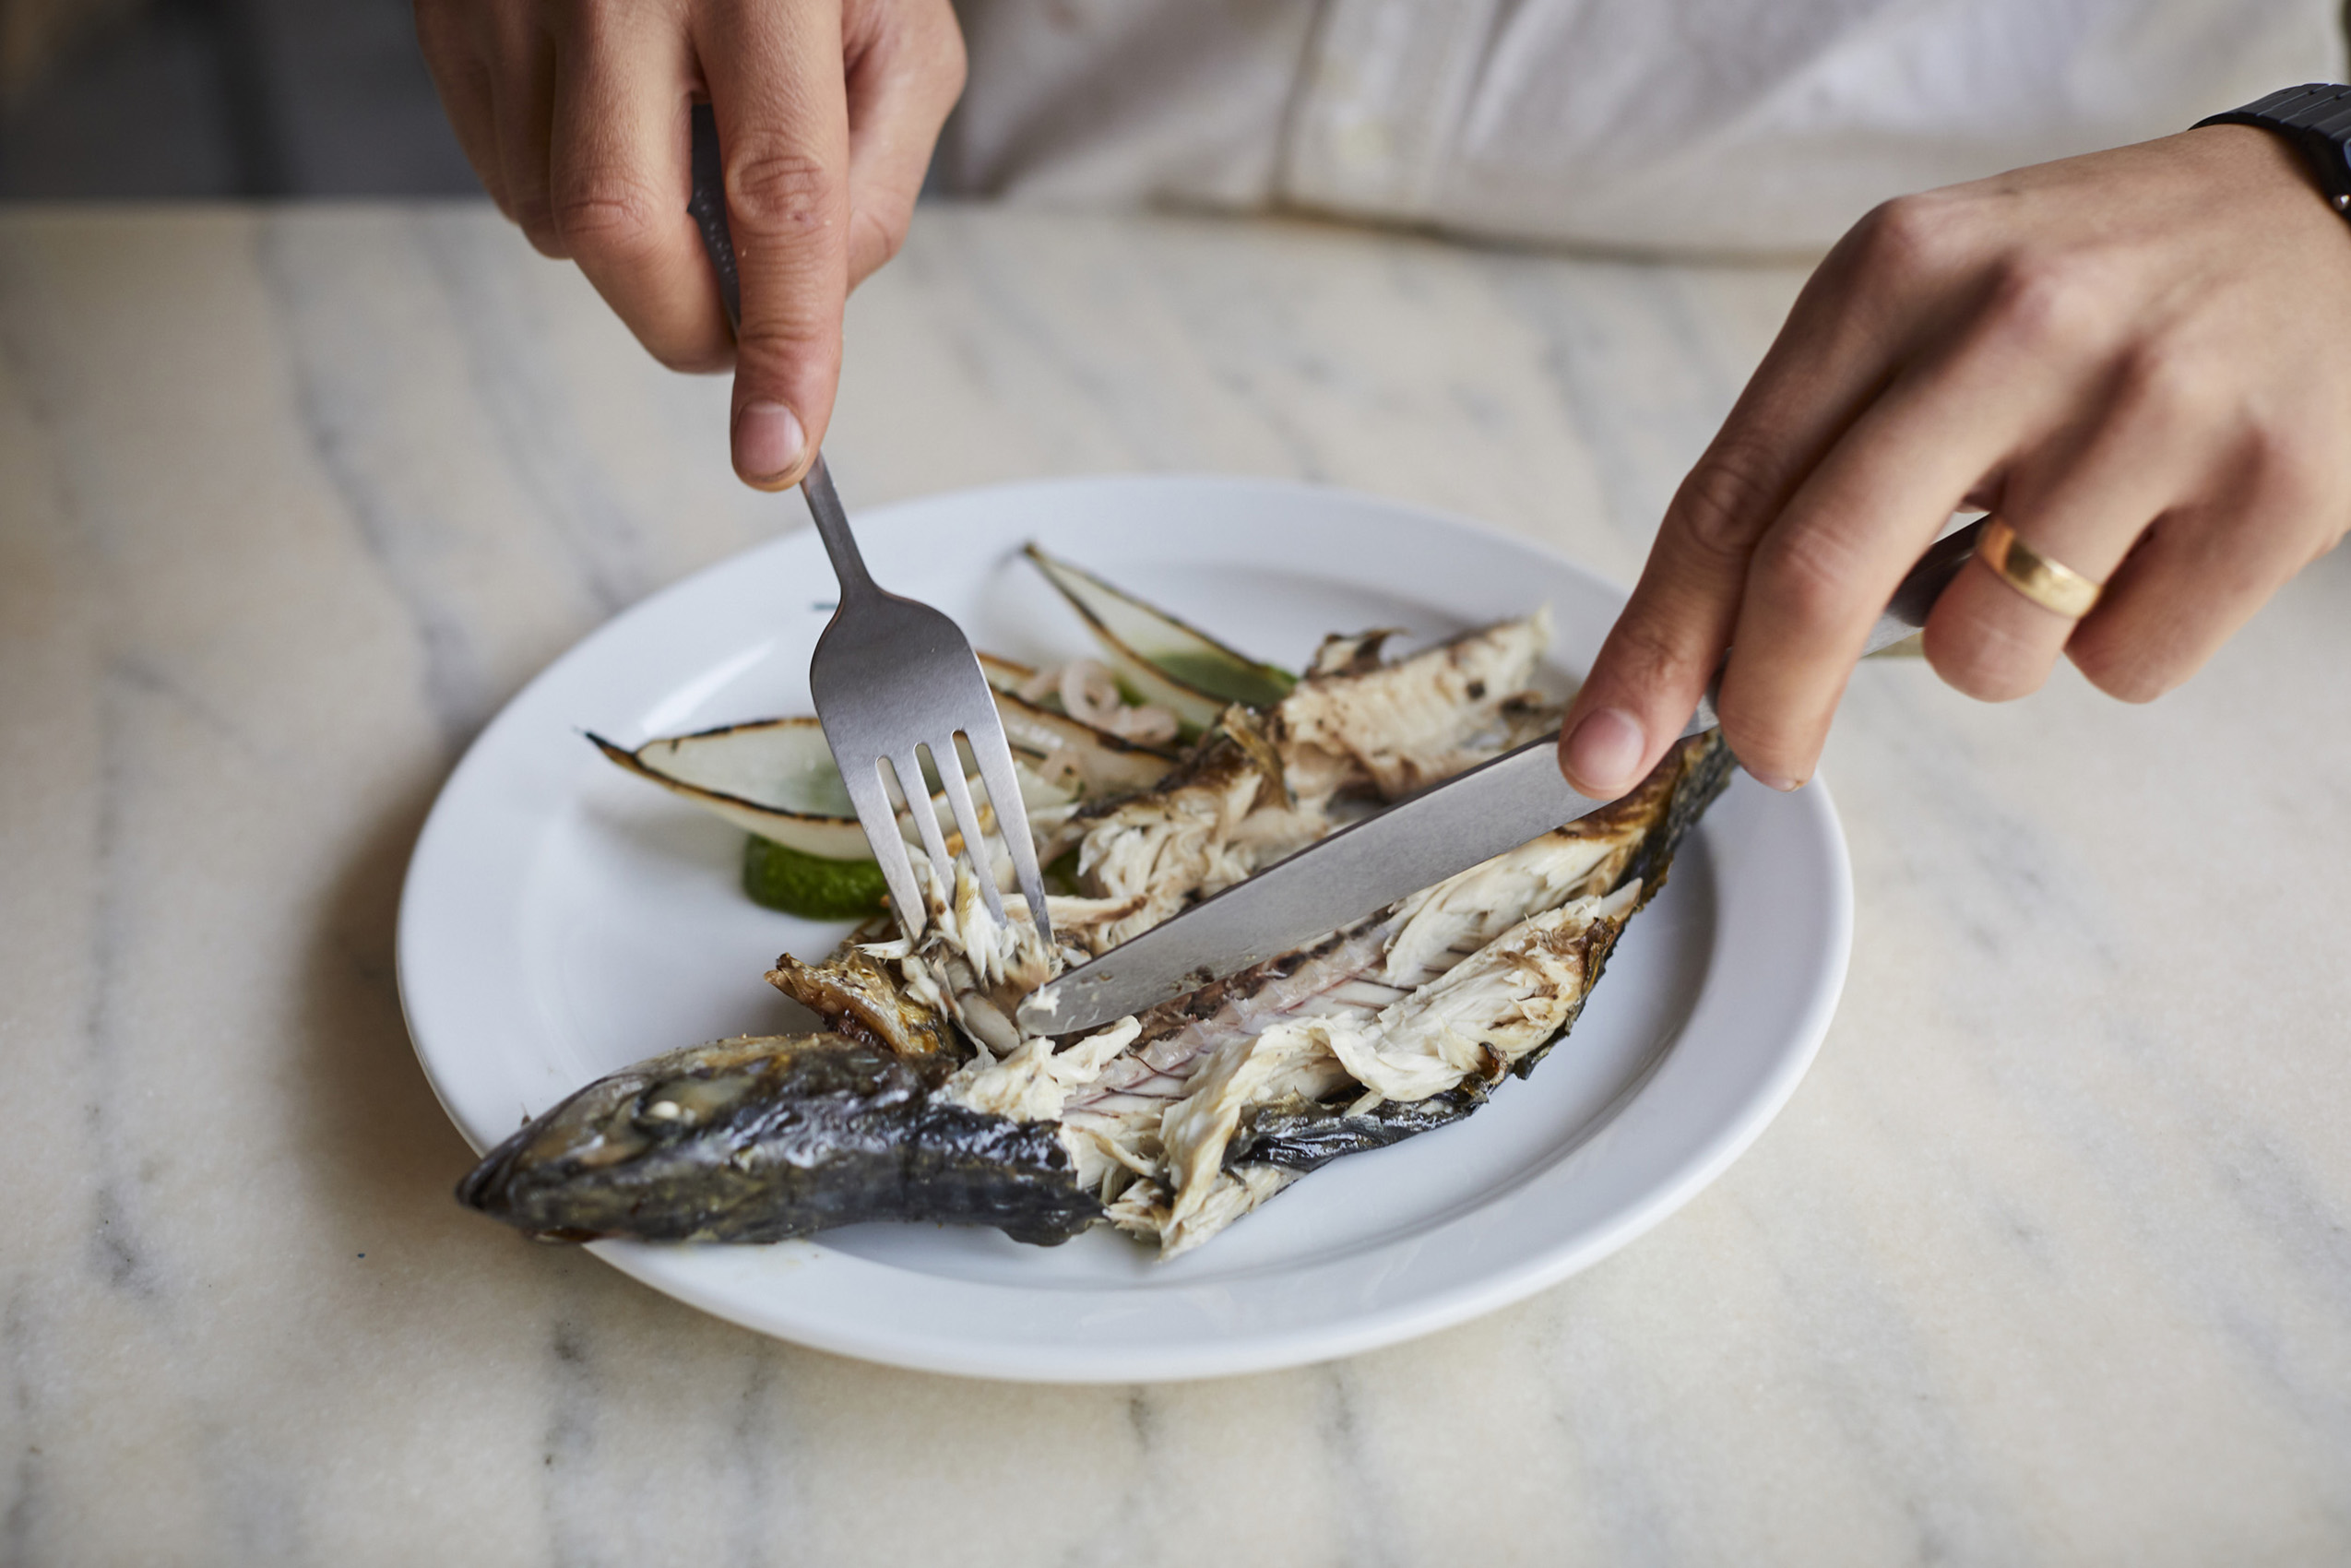 SteveRyan_Photographer_Reportage_EatingMackerel_55